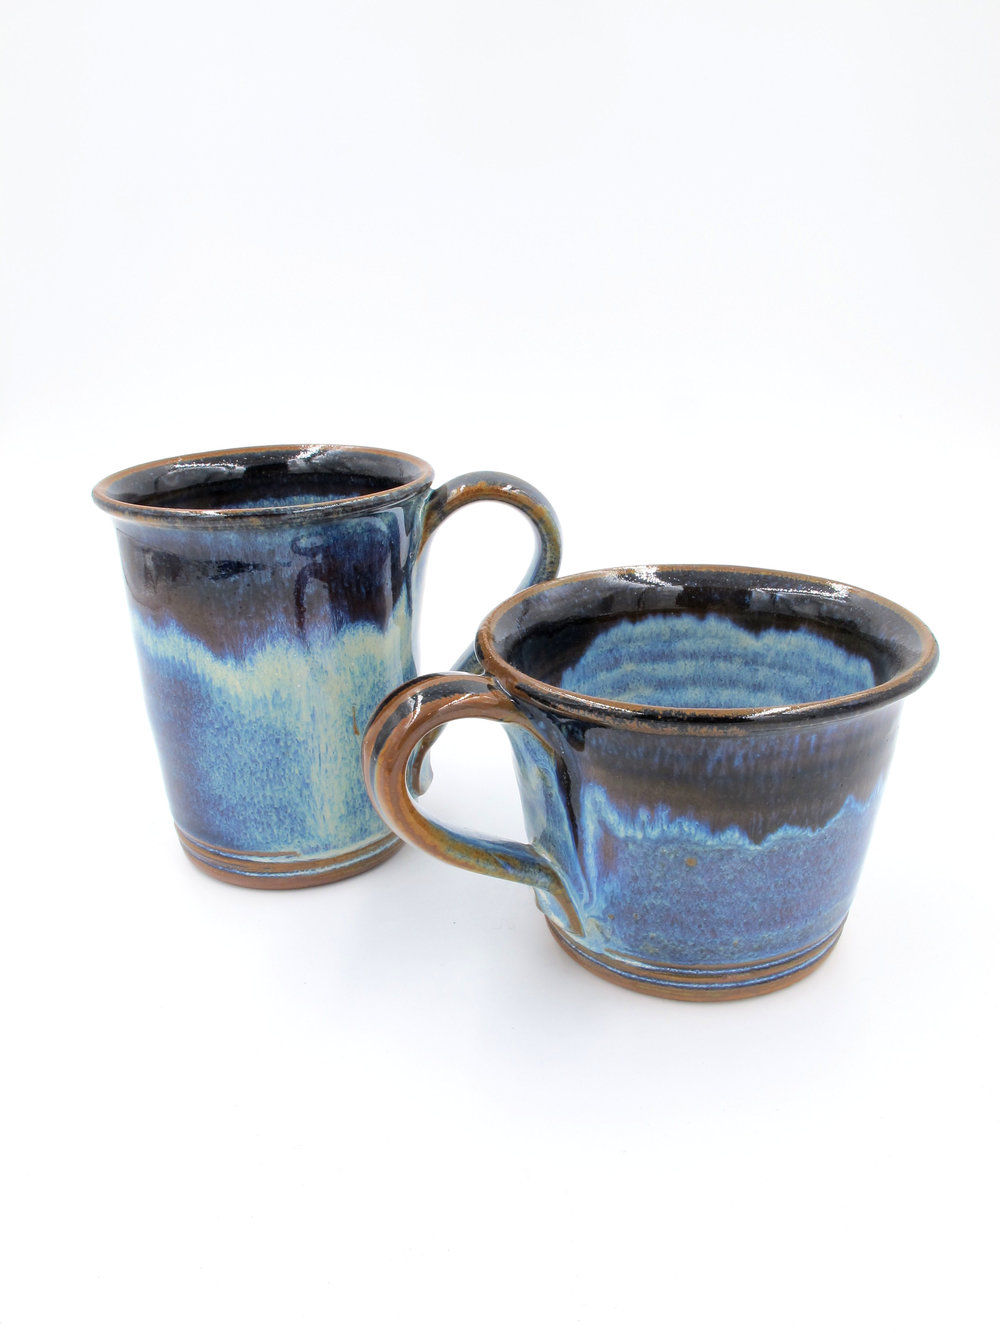 Handmade ceramics by Northumbrian Craft Potters